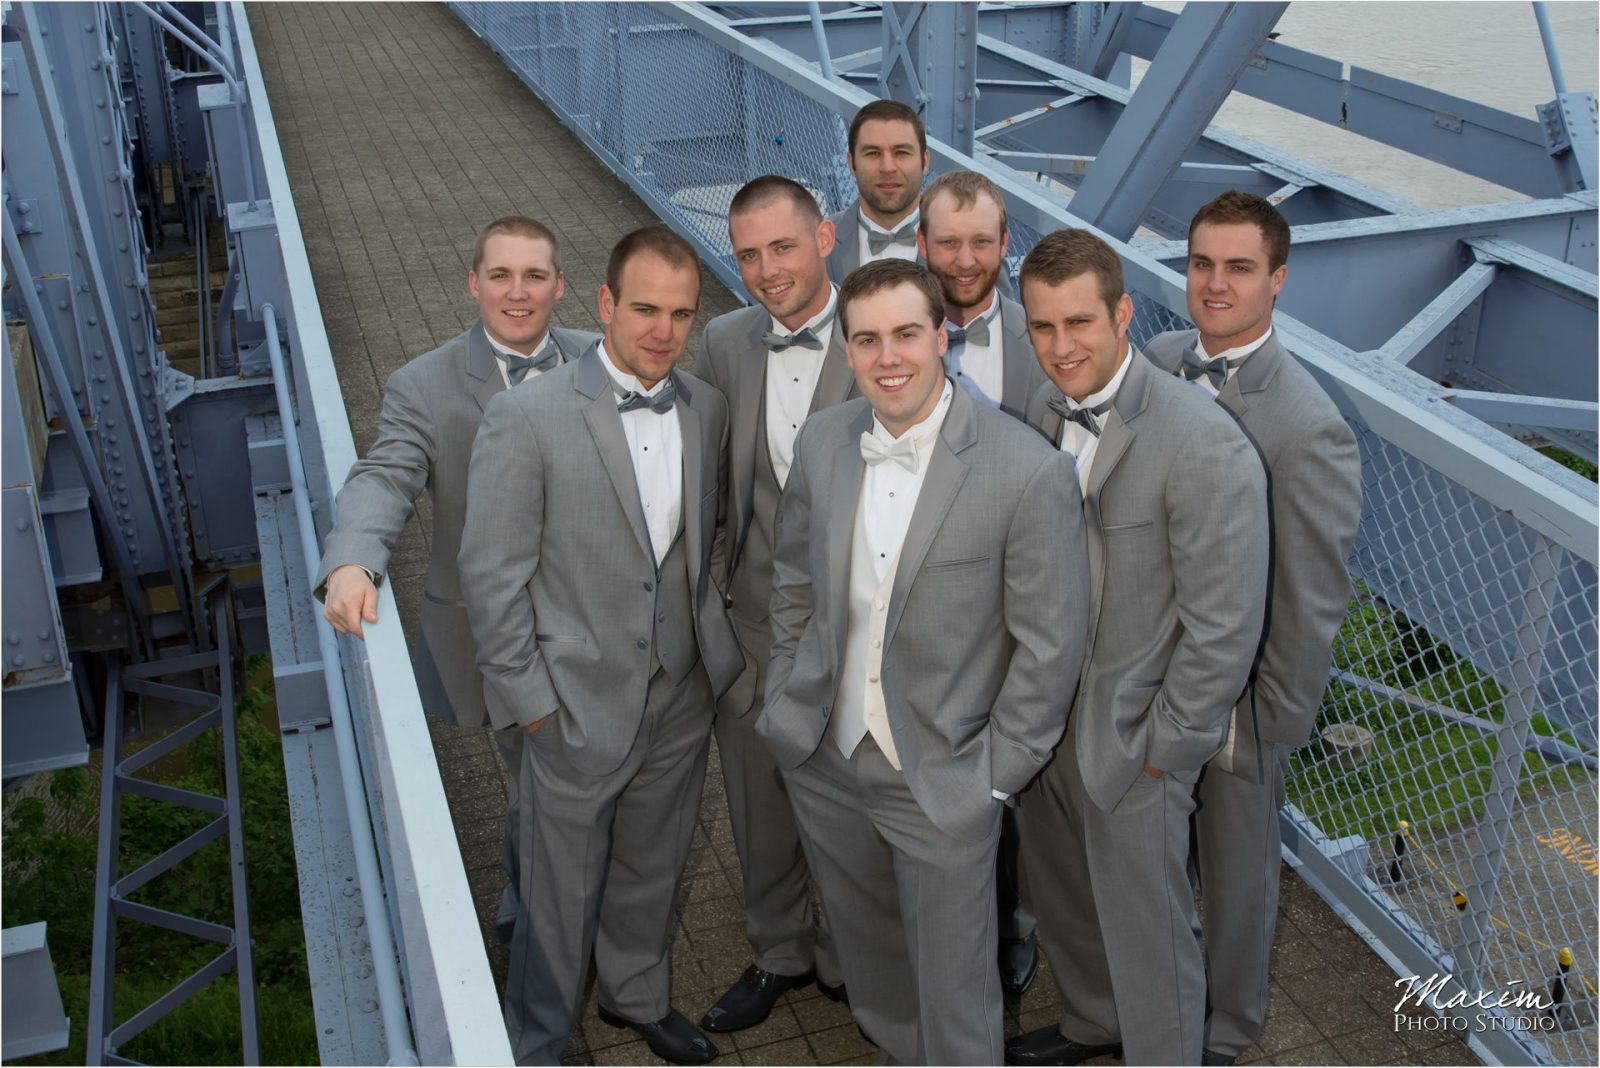 Purple People Bridge Groomsmen wedding